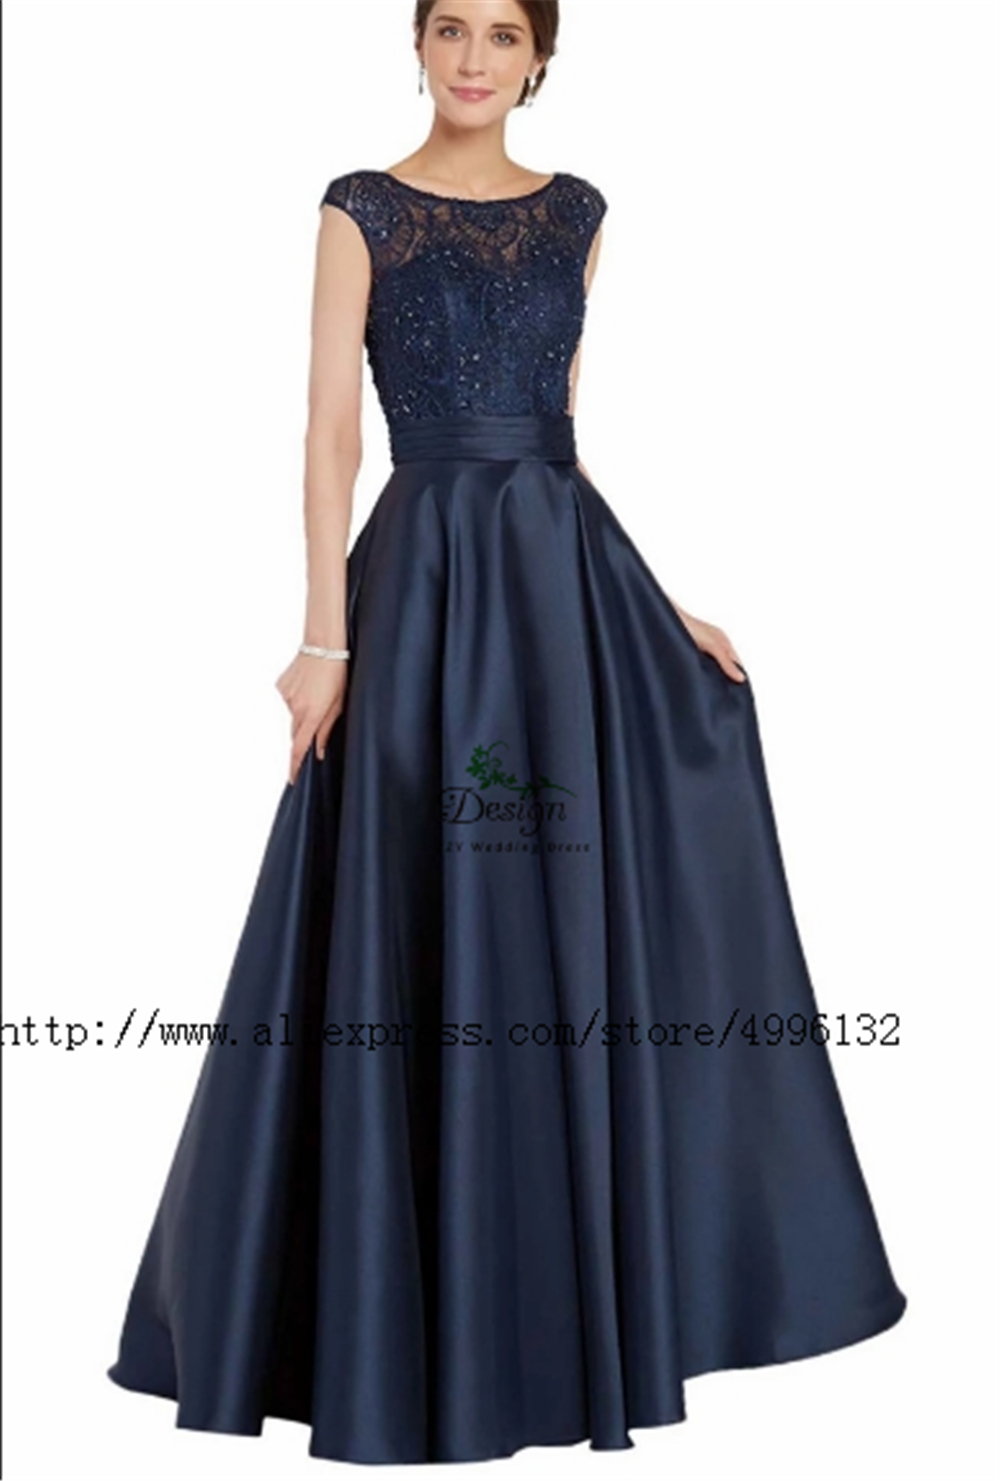 A-line Appliques Beading Chiffon Cap Sleeves Mother Of The Bridal Dresses Women's Dresses Party Dinner Grown Dress Bride